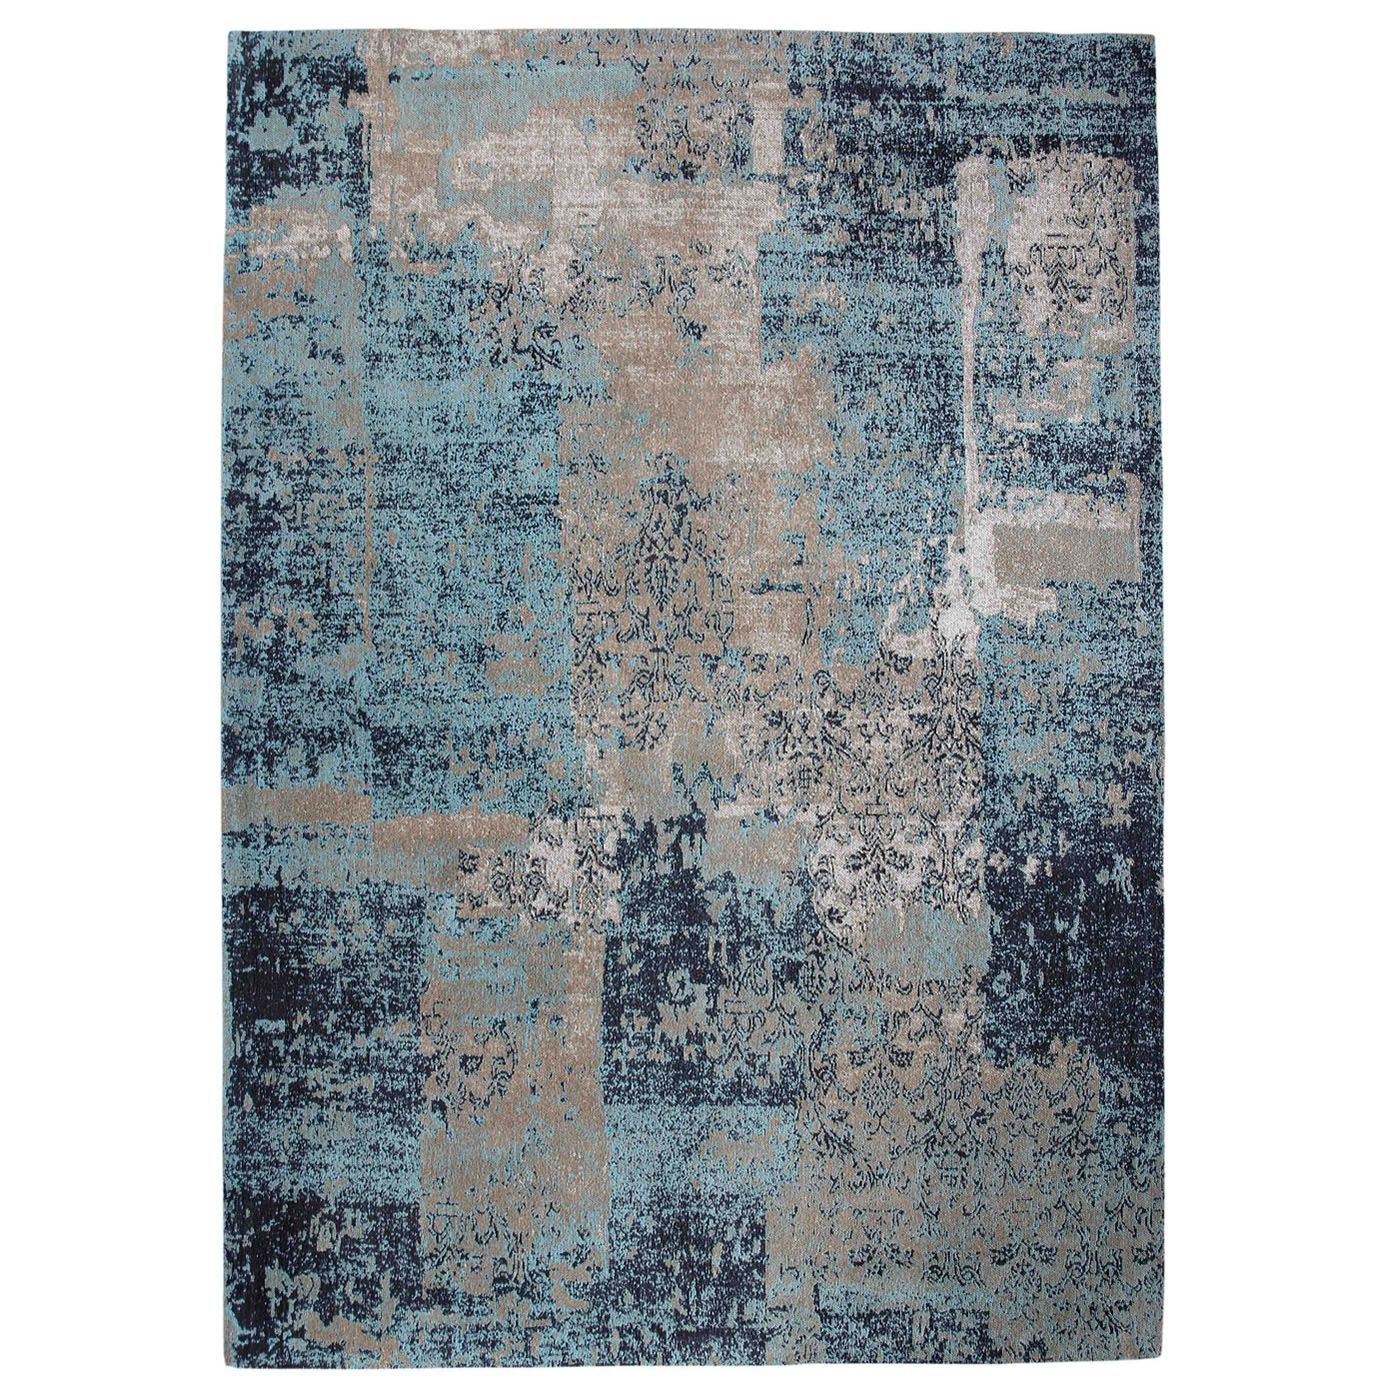 Green Decore Harmony Rug In Sky Blue And Grey Next Day Delivery Green Decore Harmony Rug In Sky Blue And Grey From Wor Blue Area Rugs Area Rugs Blue Grey Rug